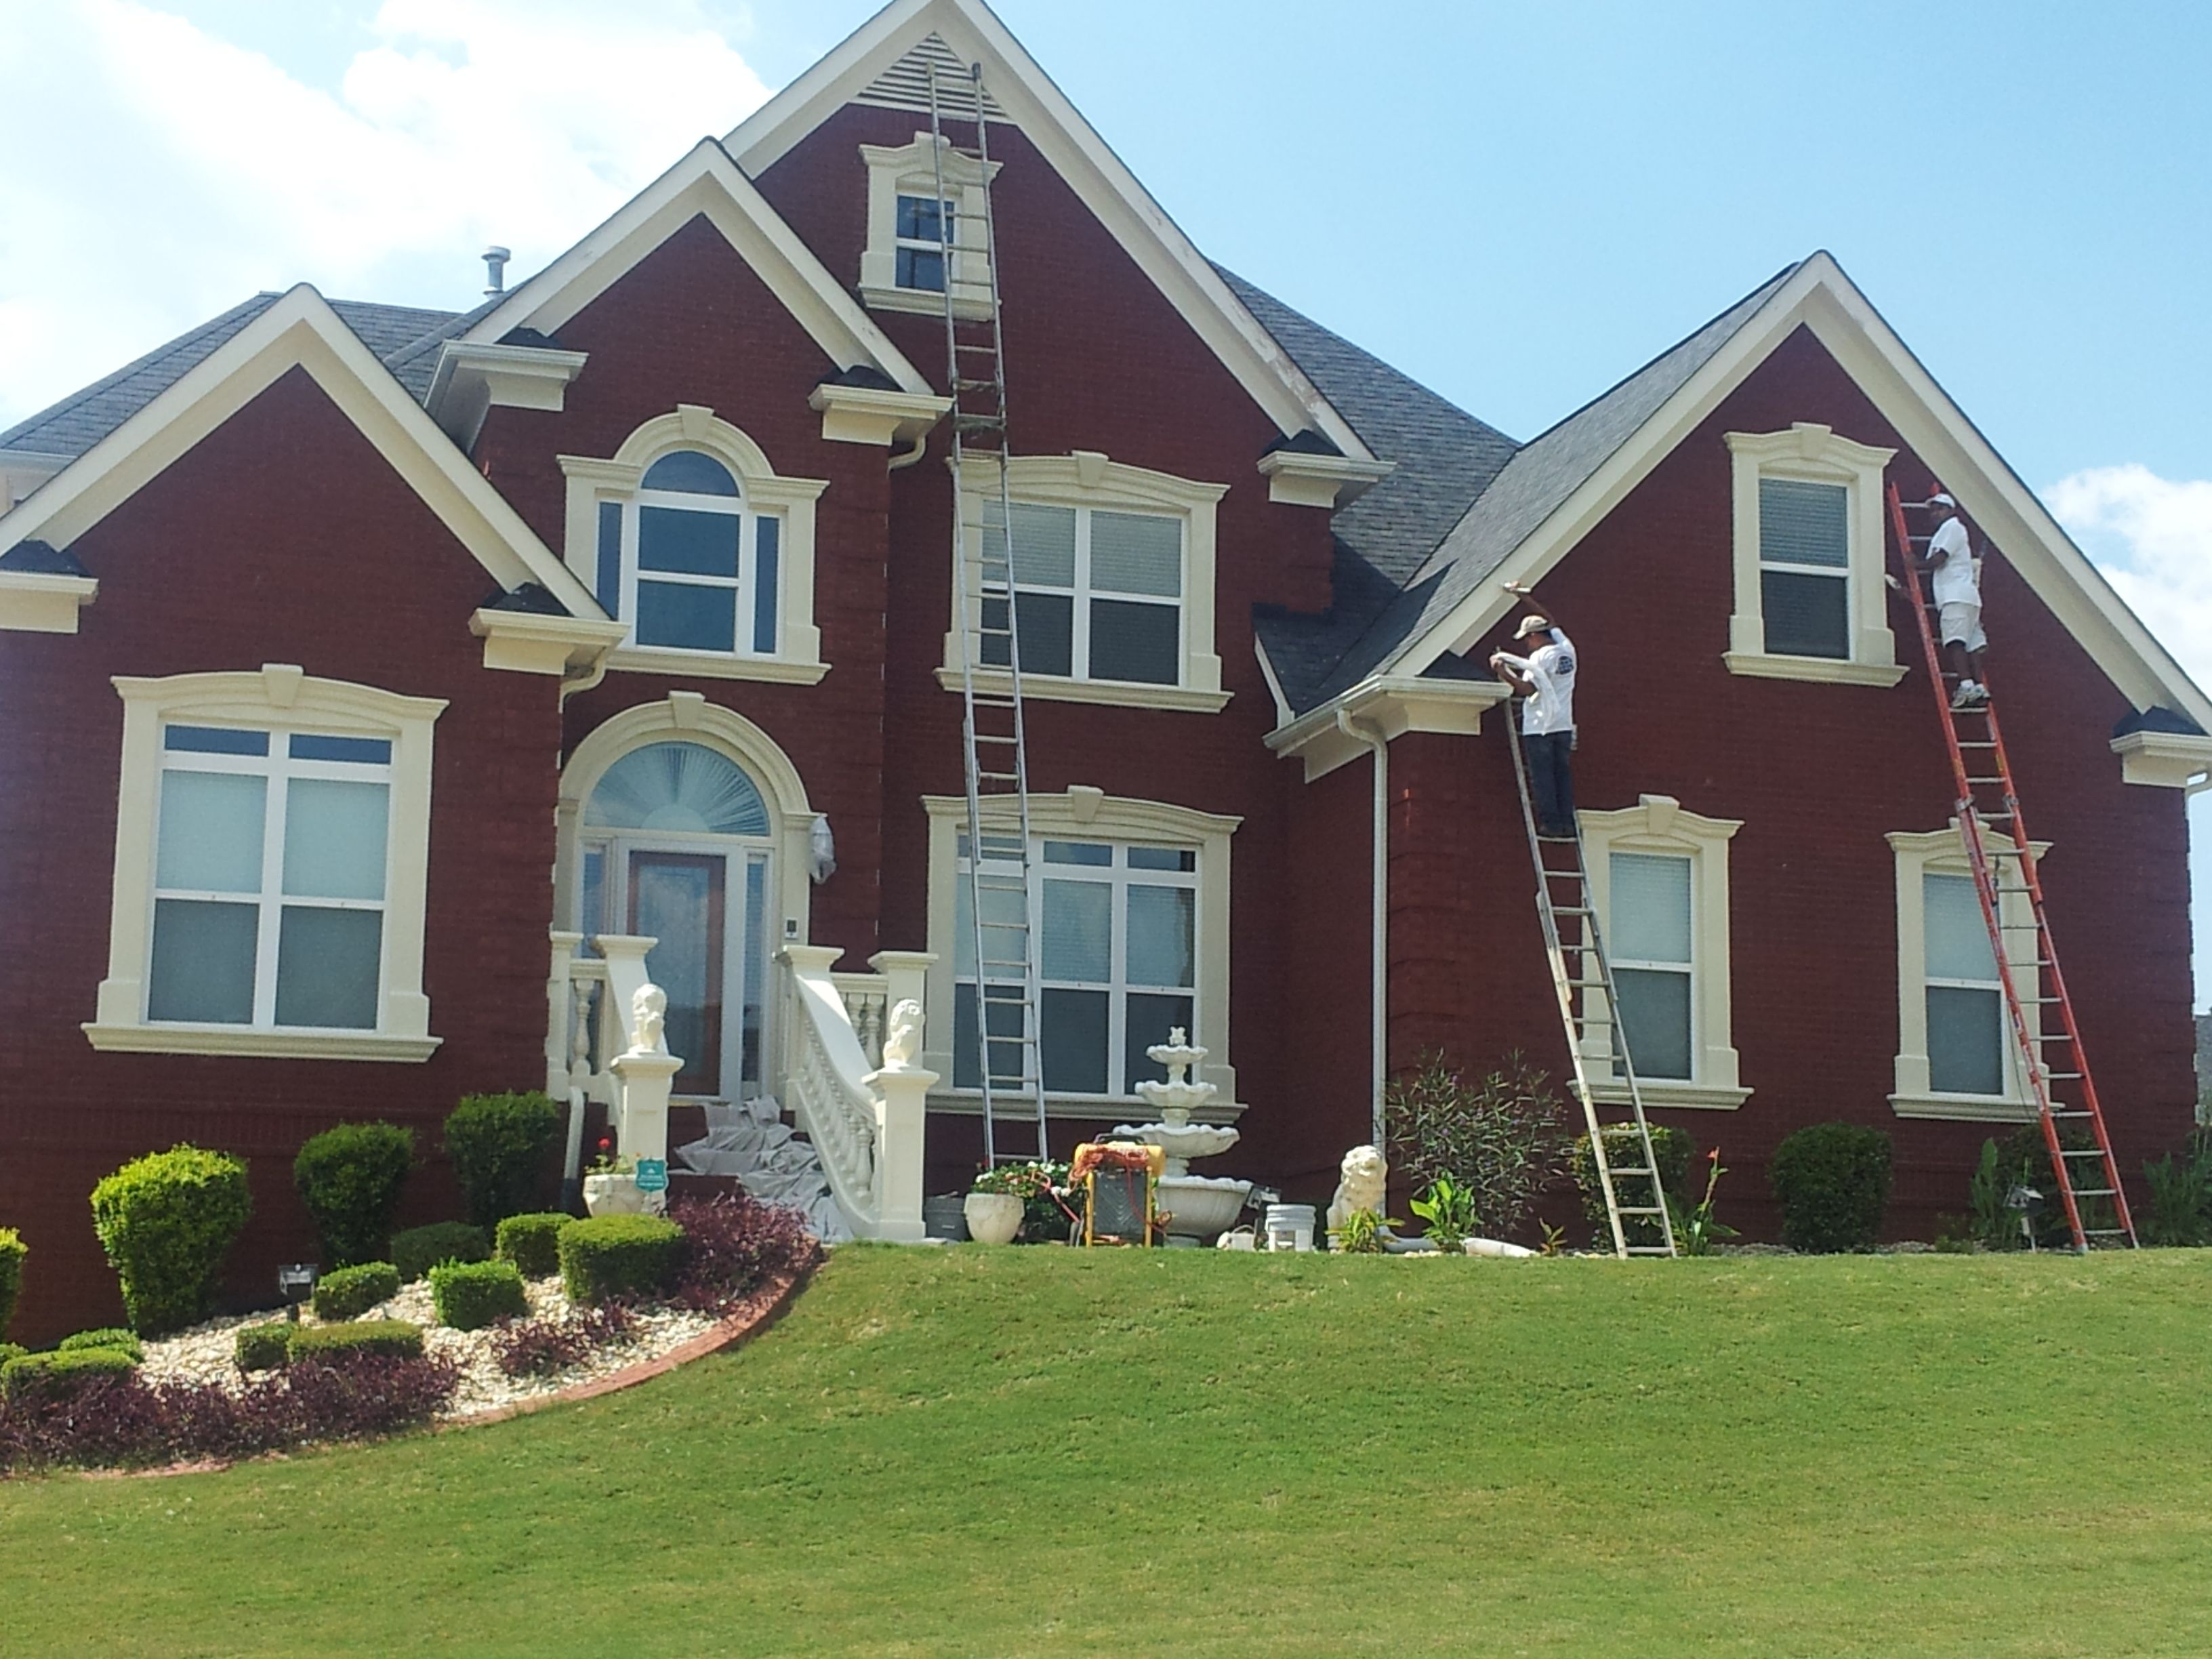 We'll bring the ladders, boost your curb appeal, exterior painting, house painting